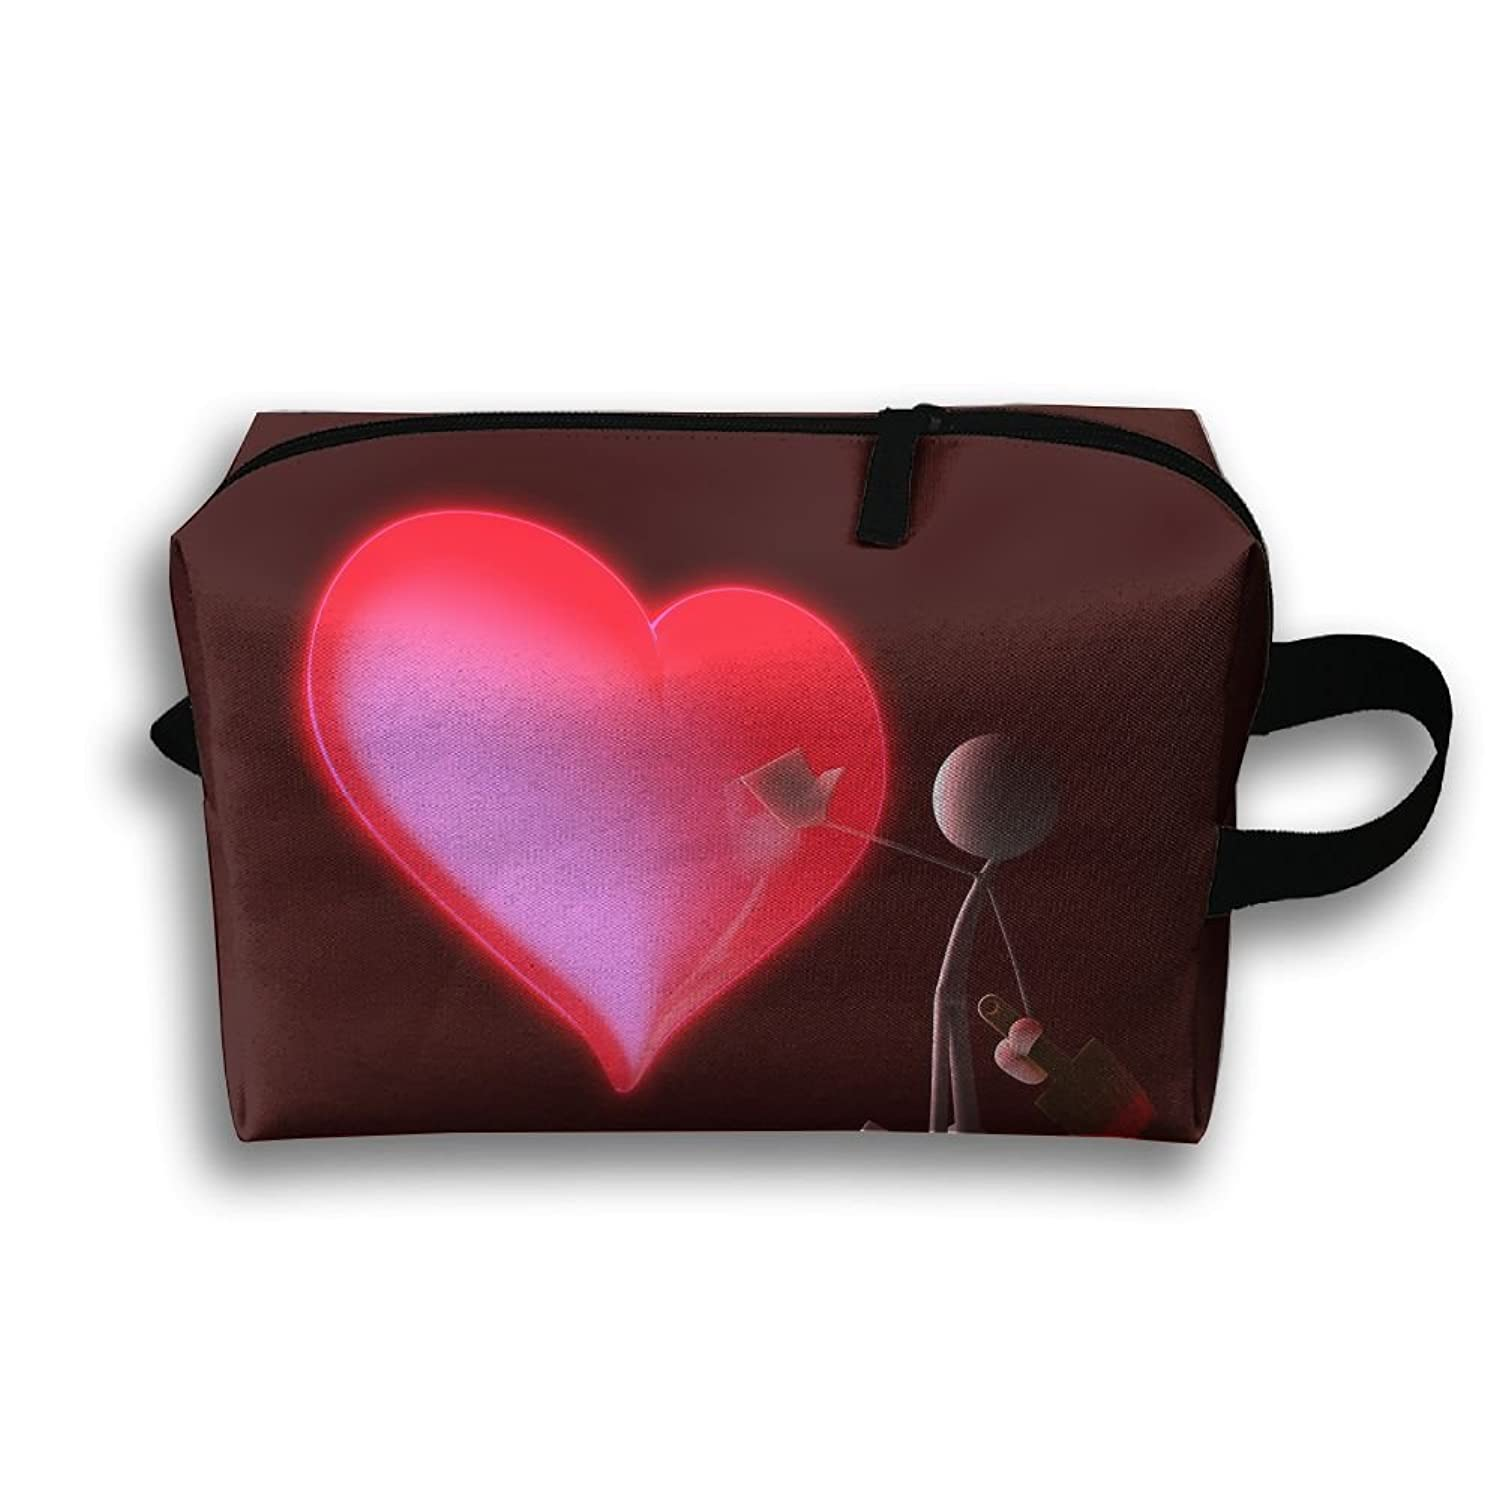 Storage Bag Travel Pouch Touch Pain Heart Purse Organizer Power Bank Data Wire Cosmetic Stationery Holder